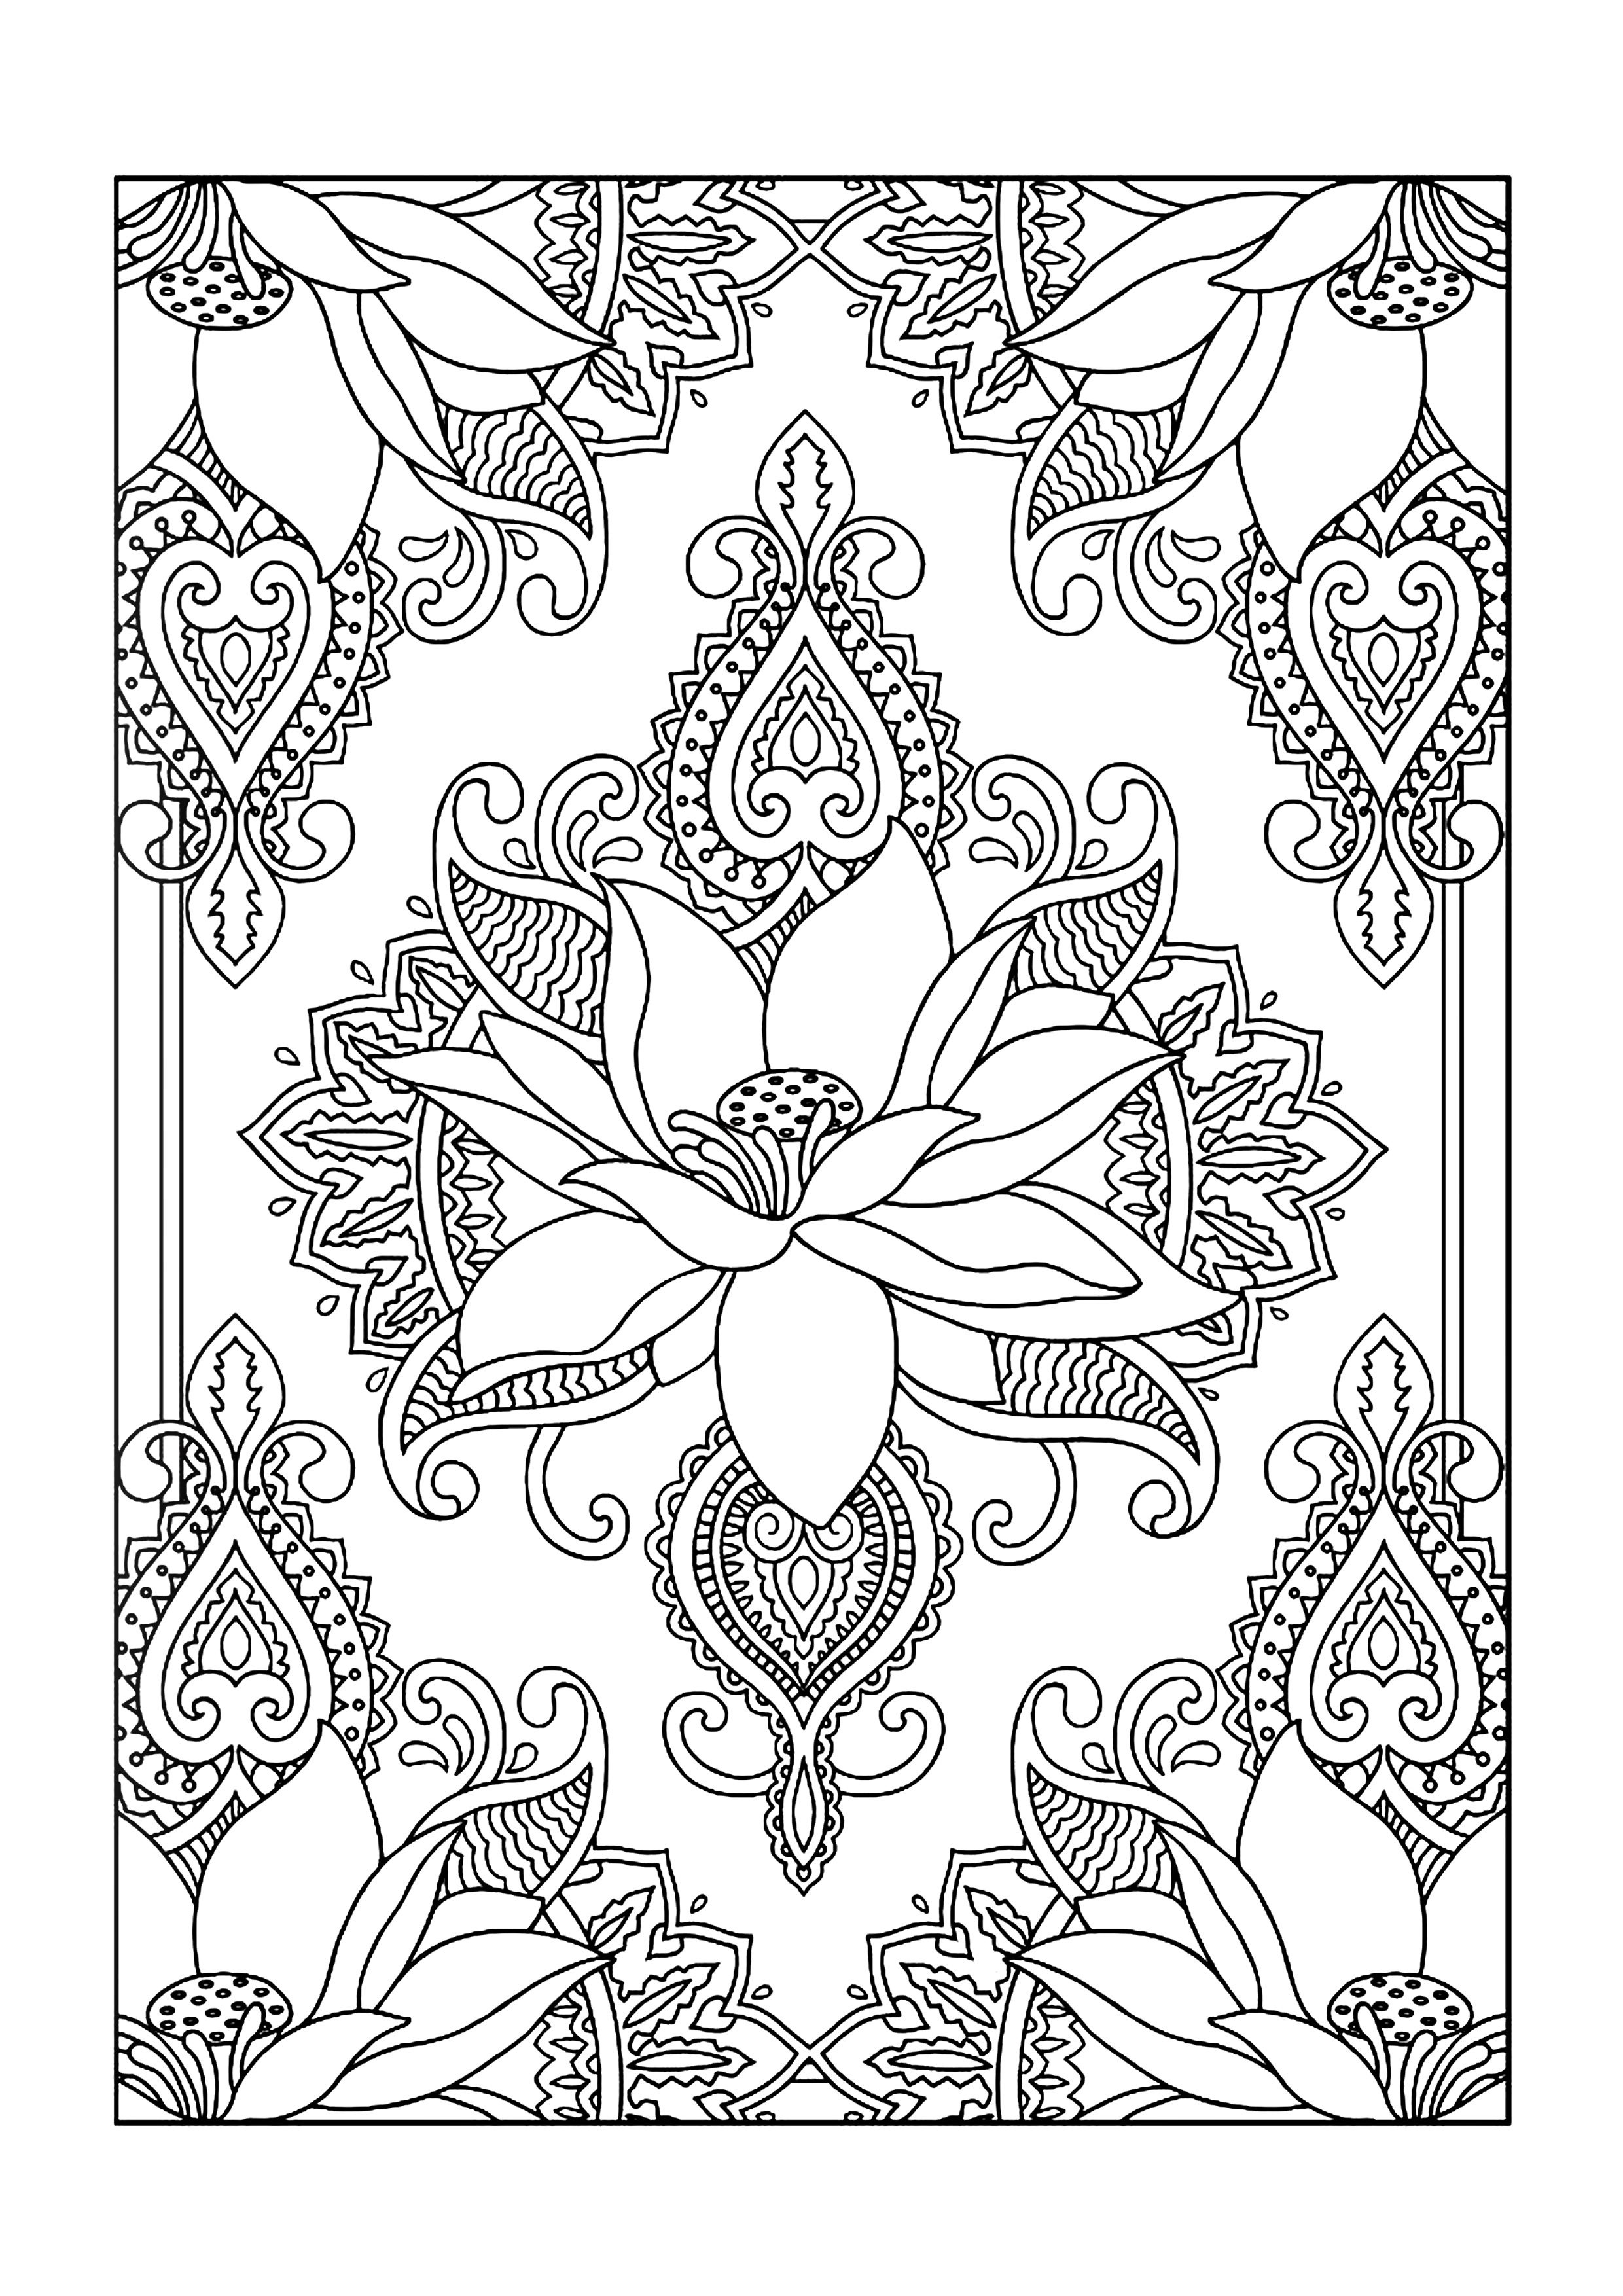 coloring adults printable get this butterfly coloring pages to print for adults 90037 coloring adults printable